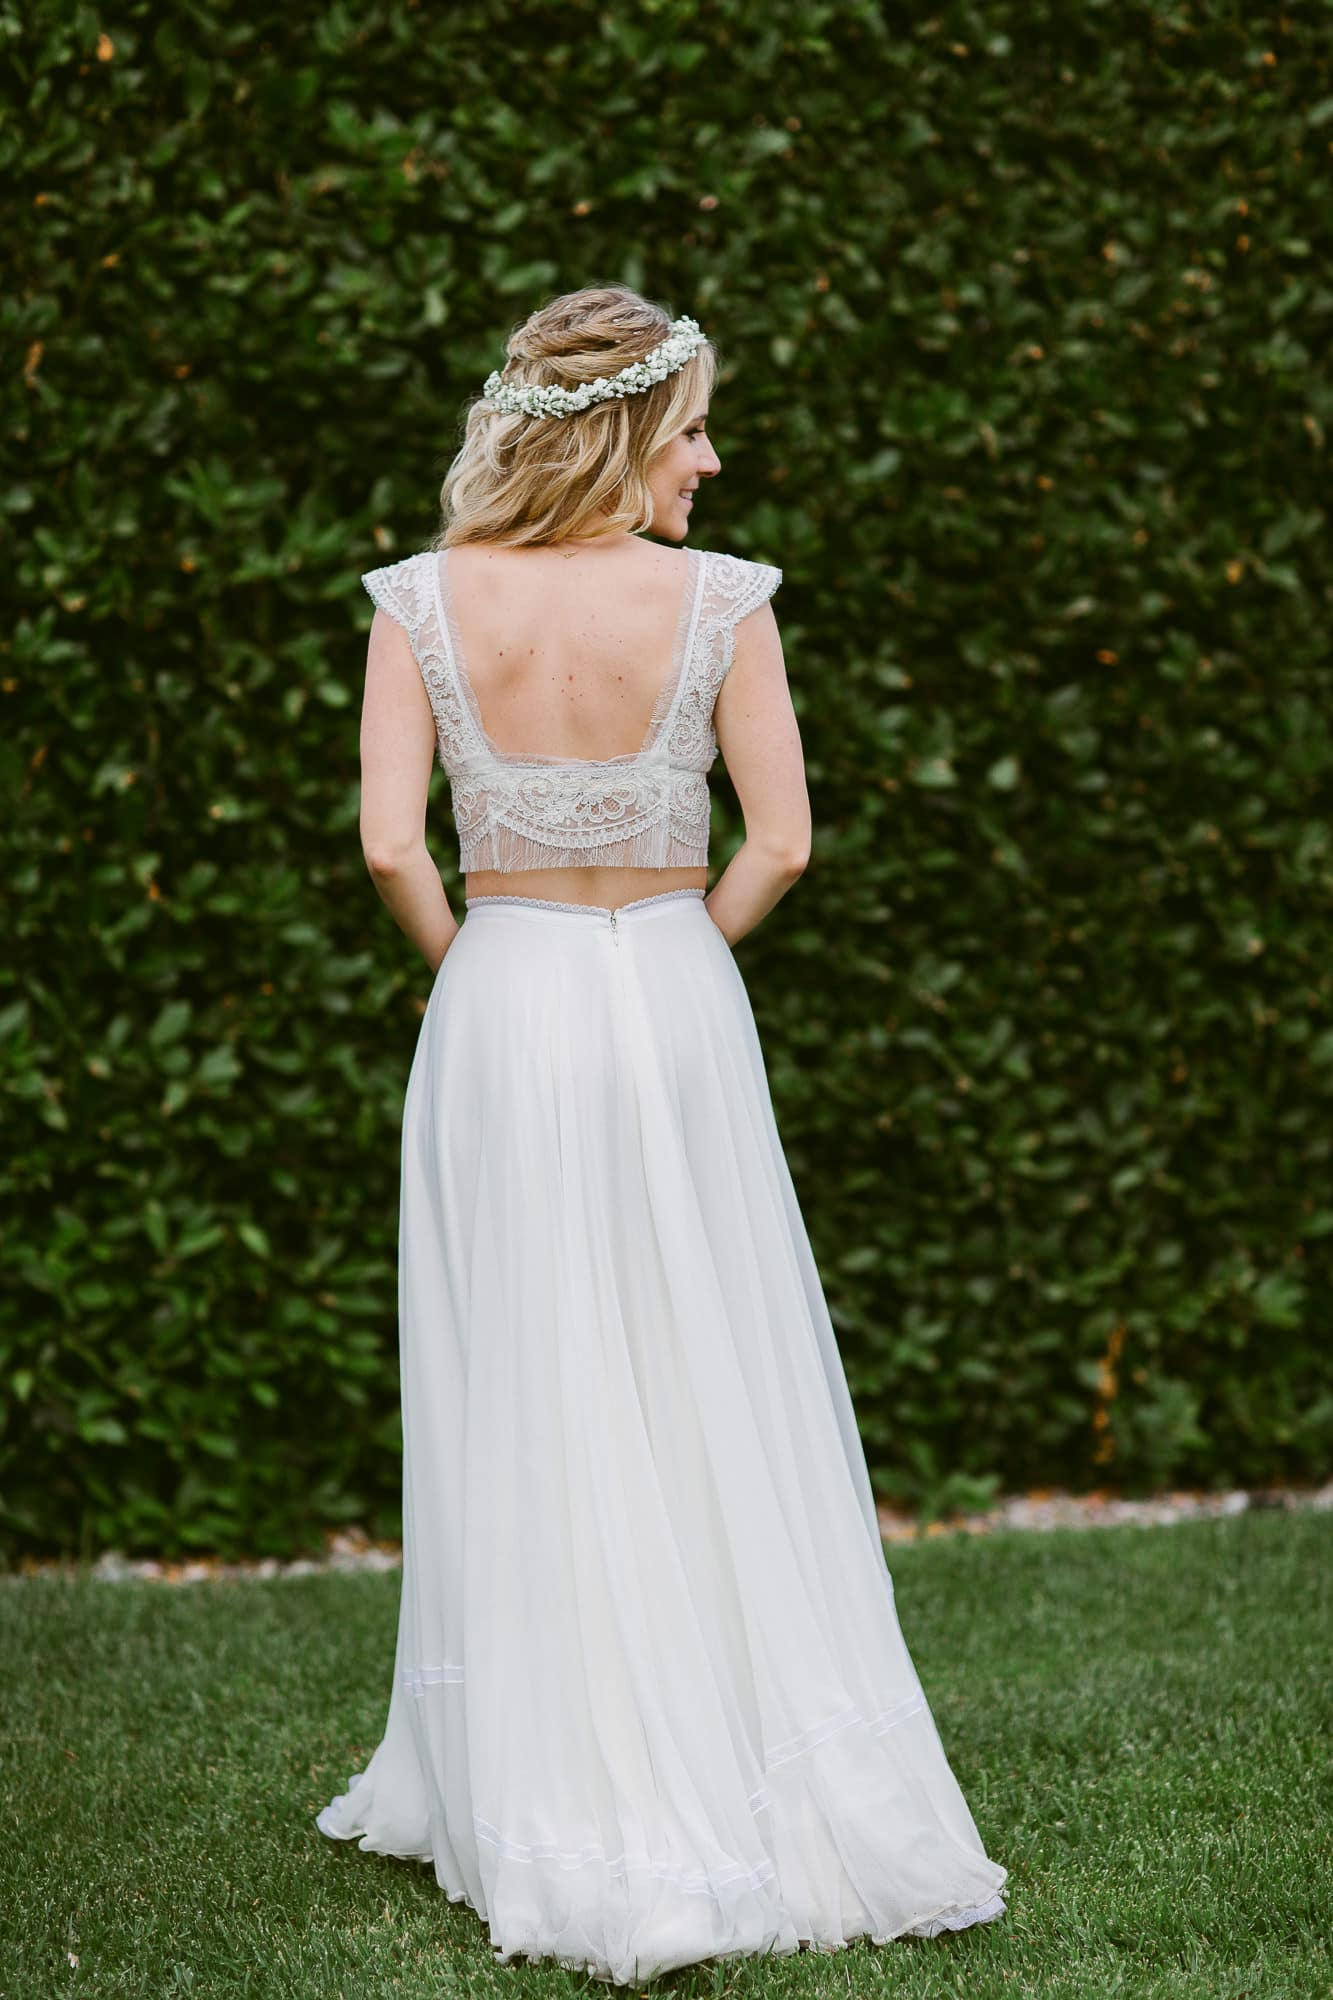 how-to-choose-your-wedding-dress-14.